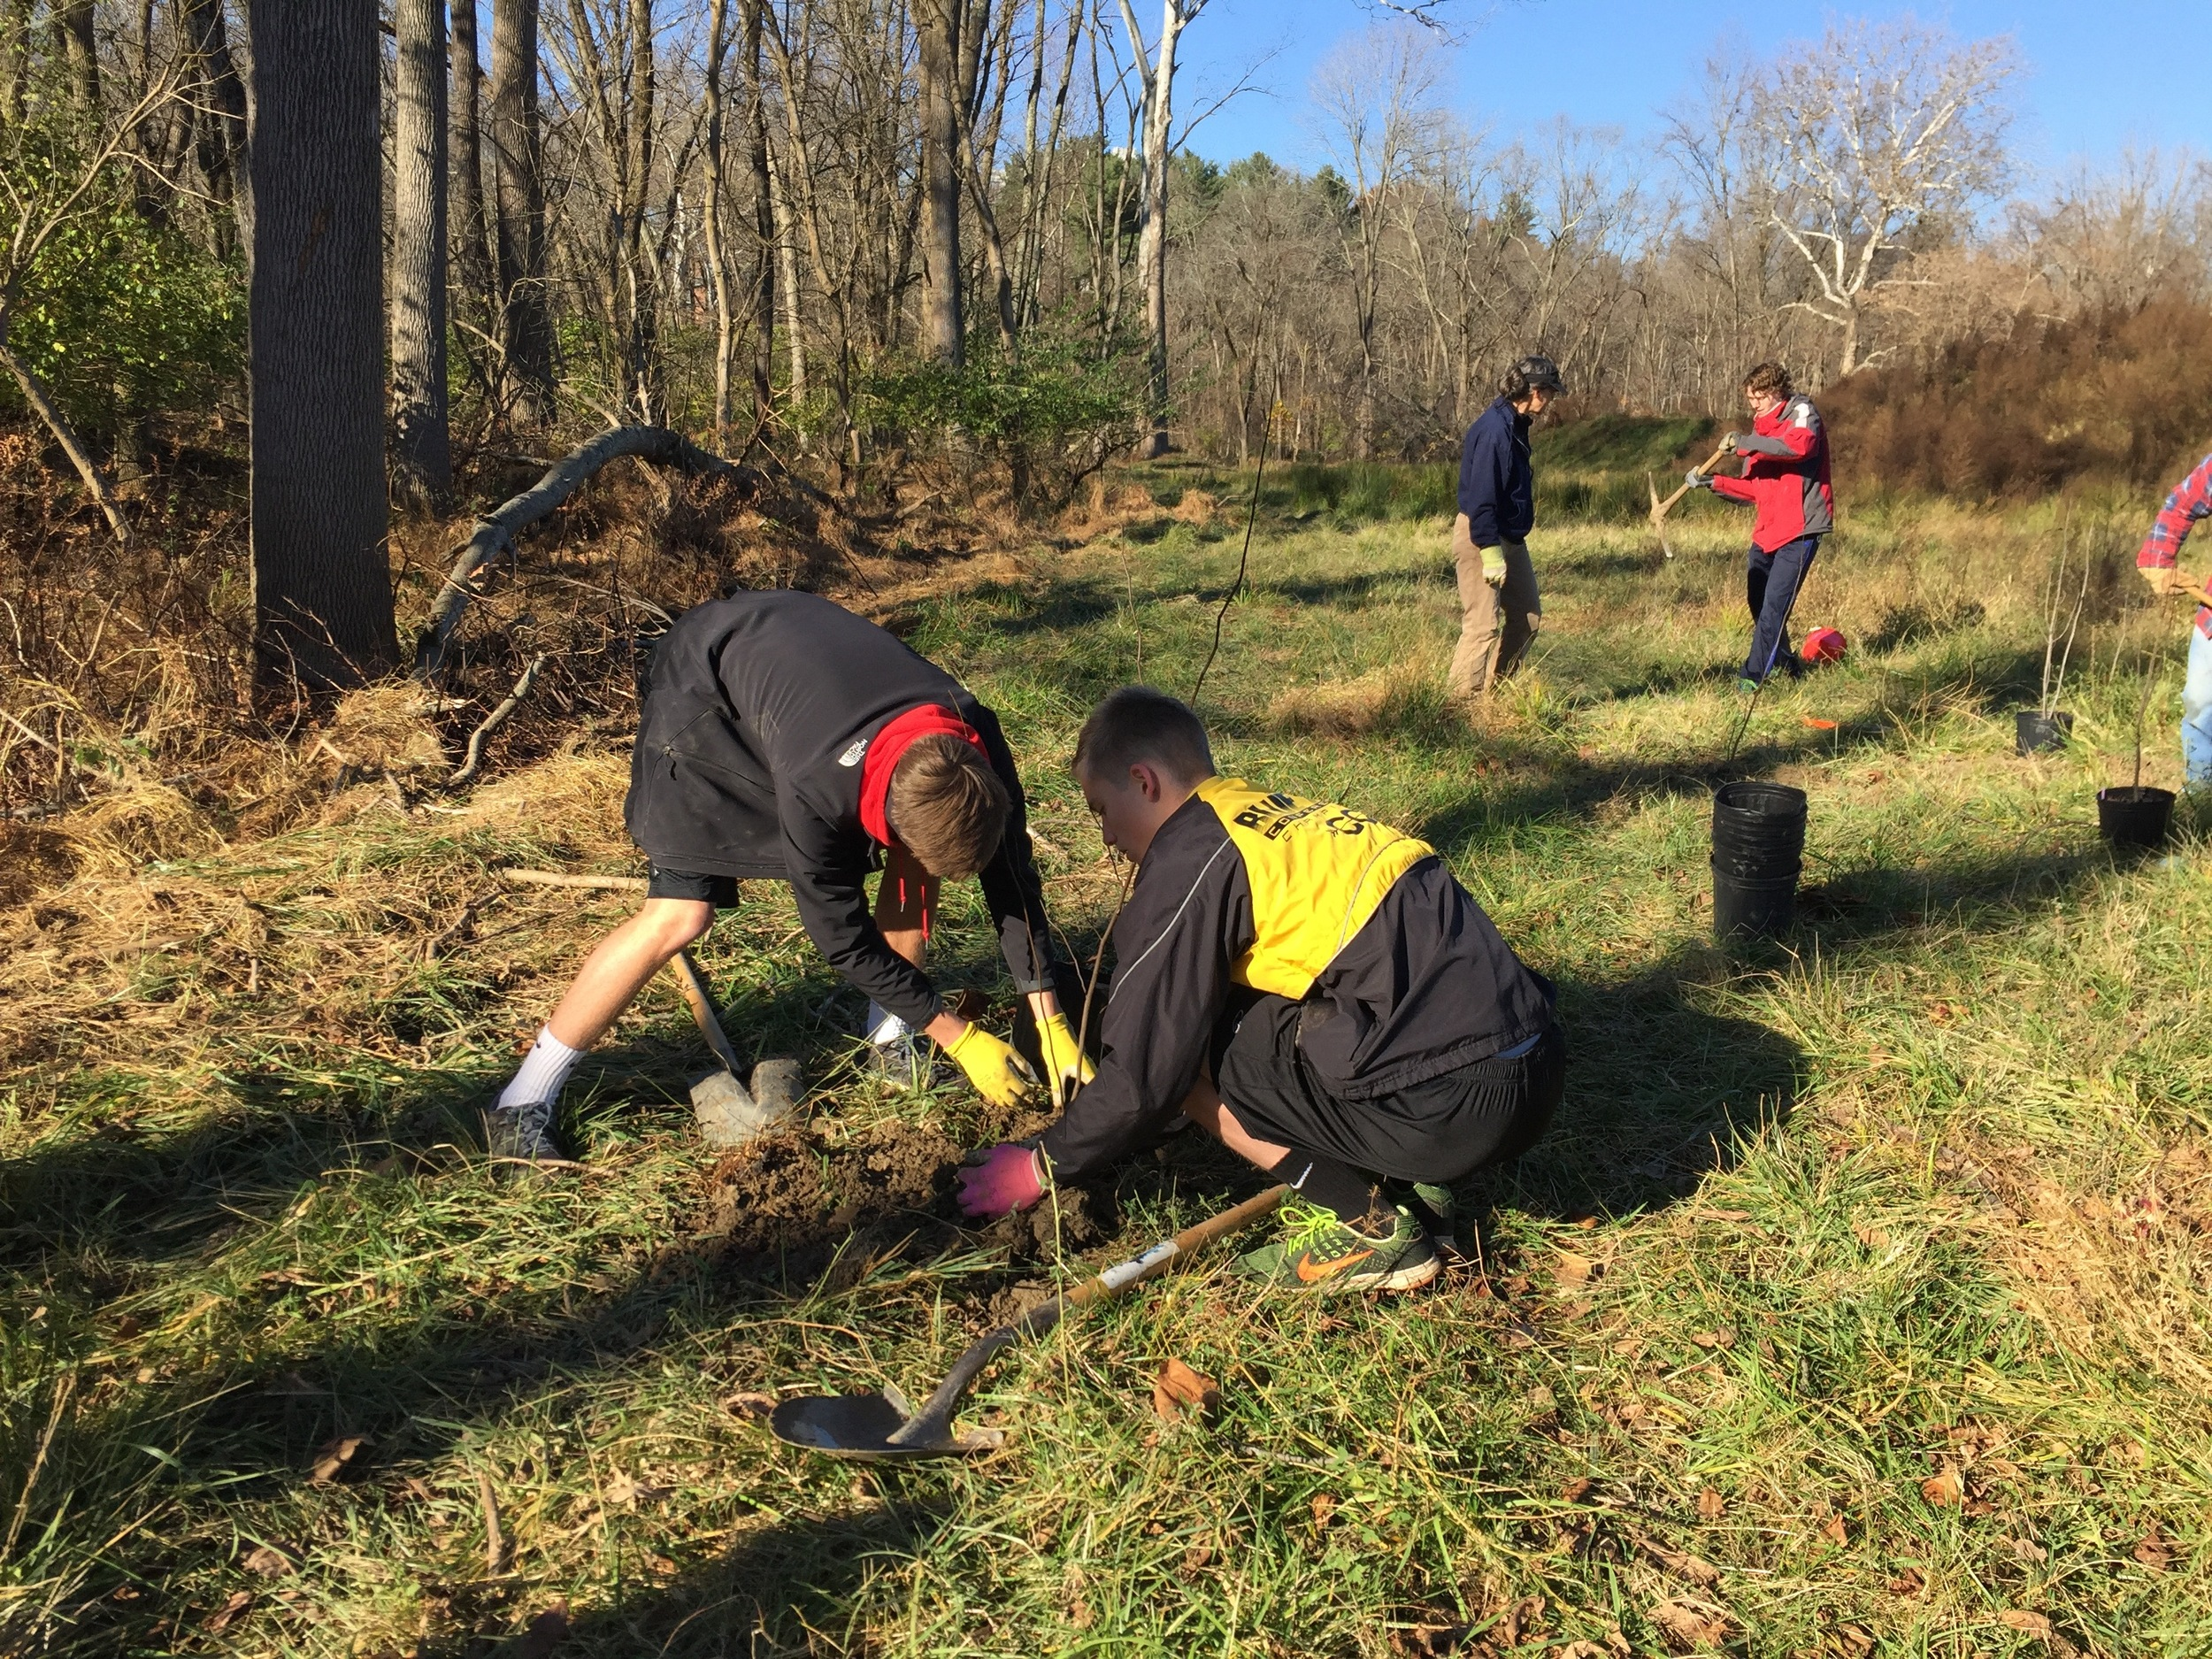 Students from Newark High School planting trees and shrubs along the White Clay Creek.